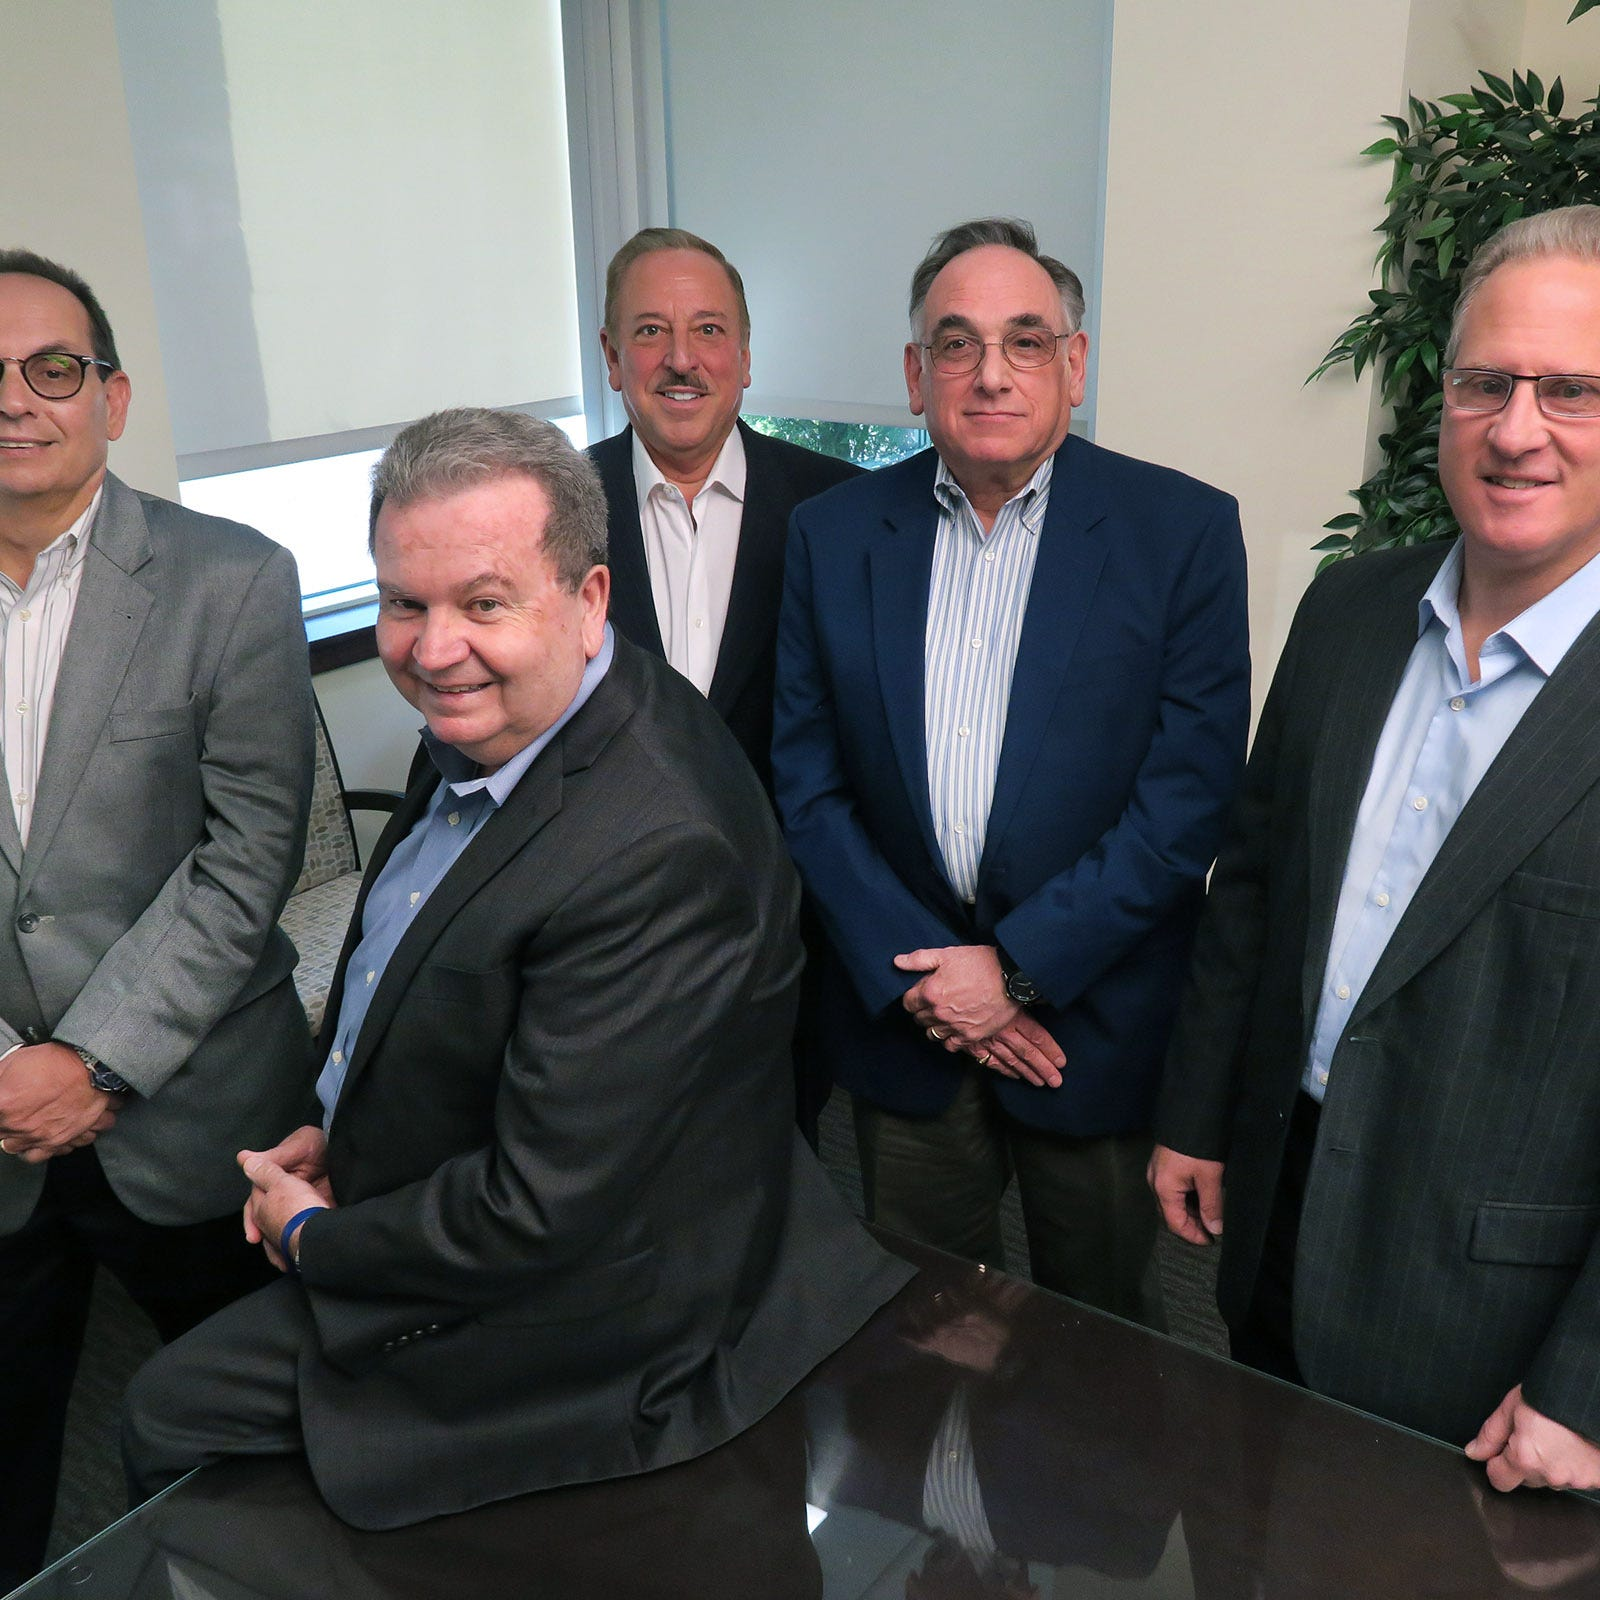 Cg accounting firm grows by being much more than number crunchers